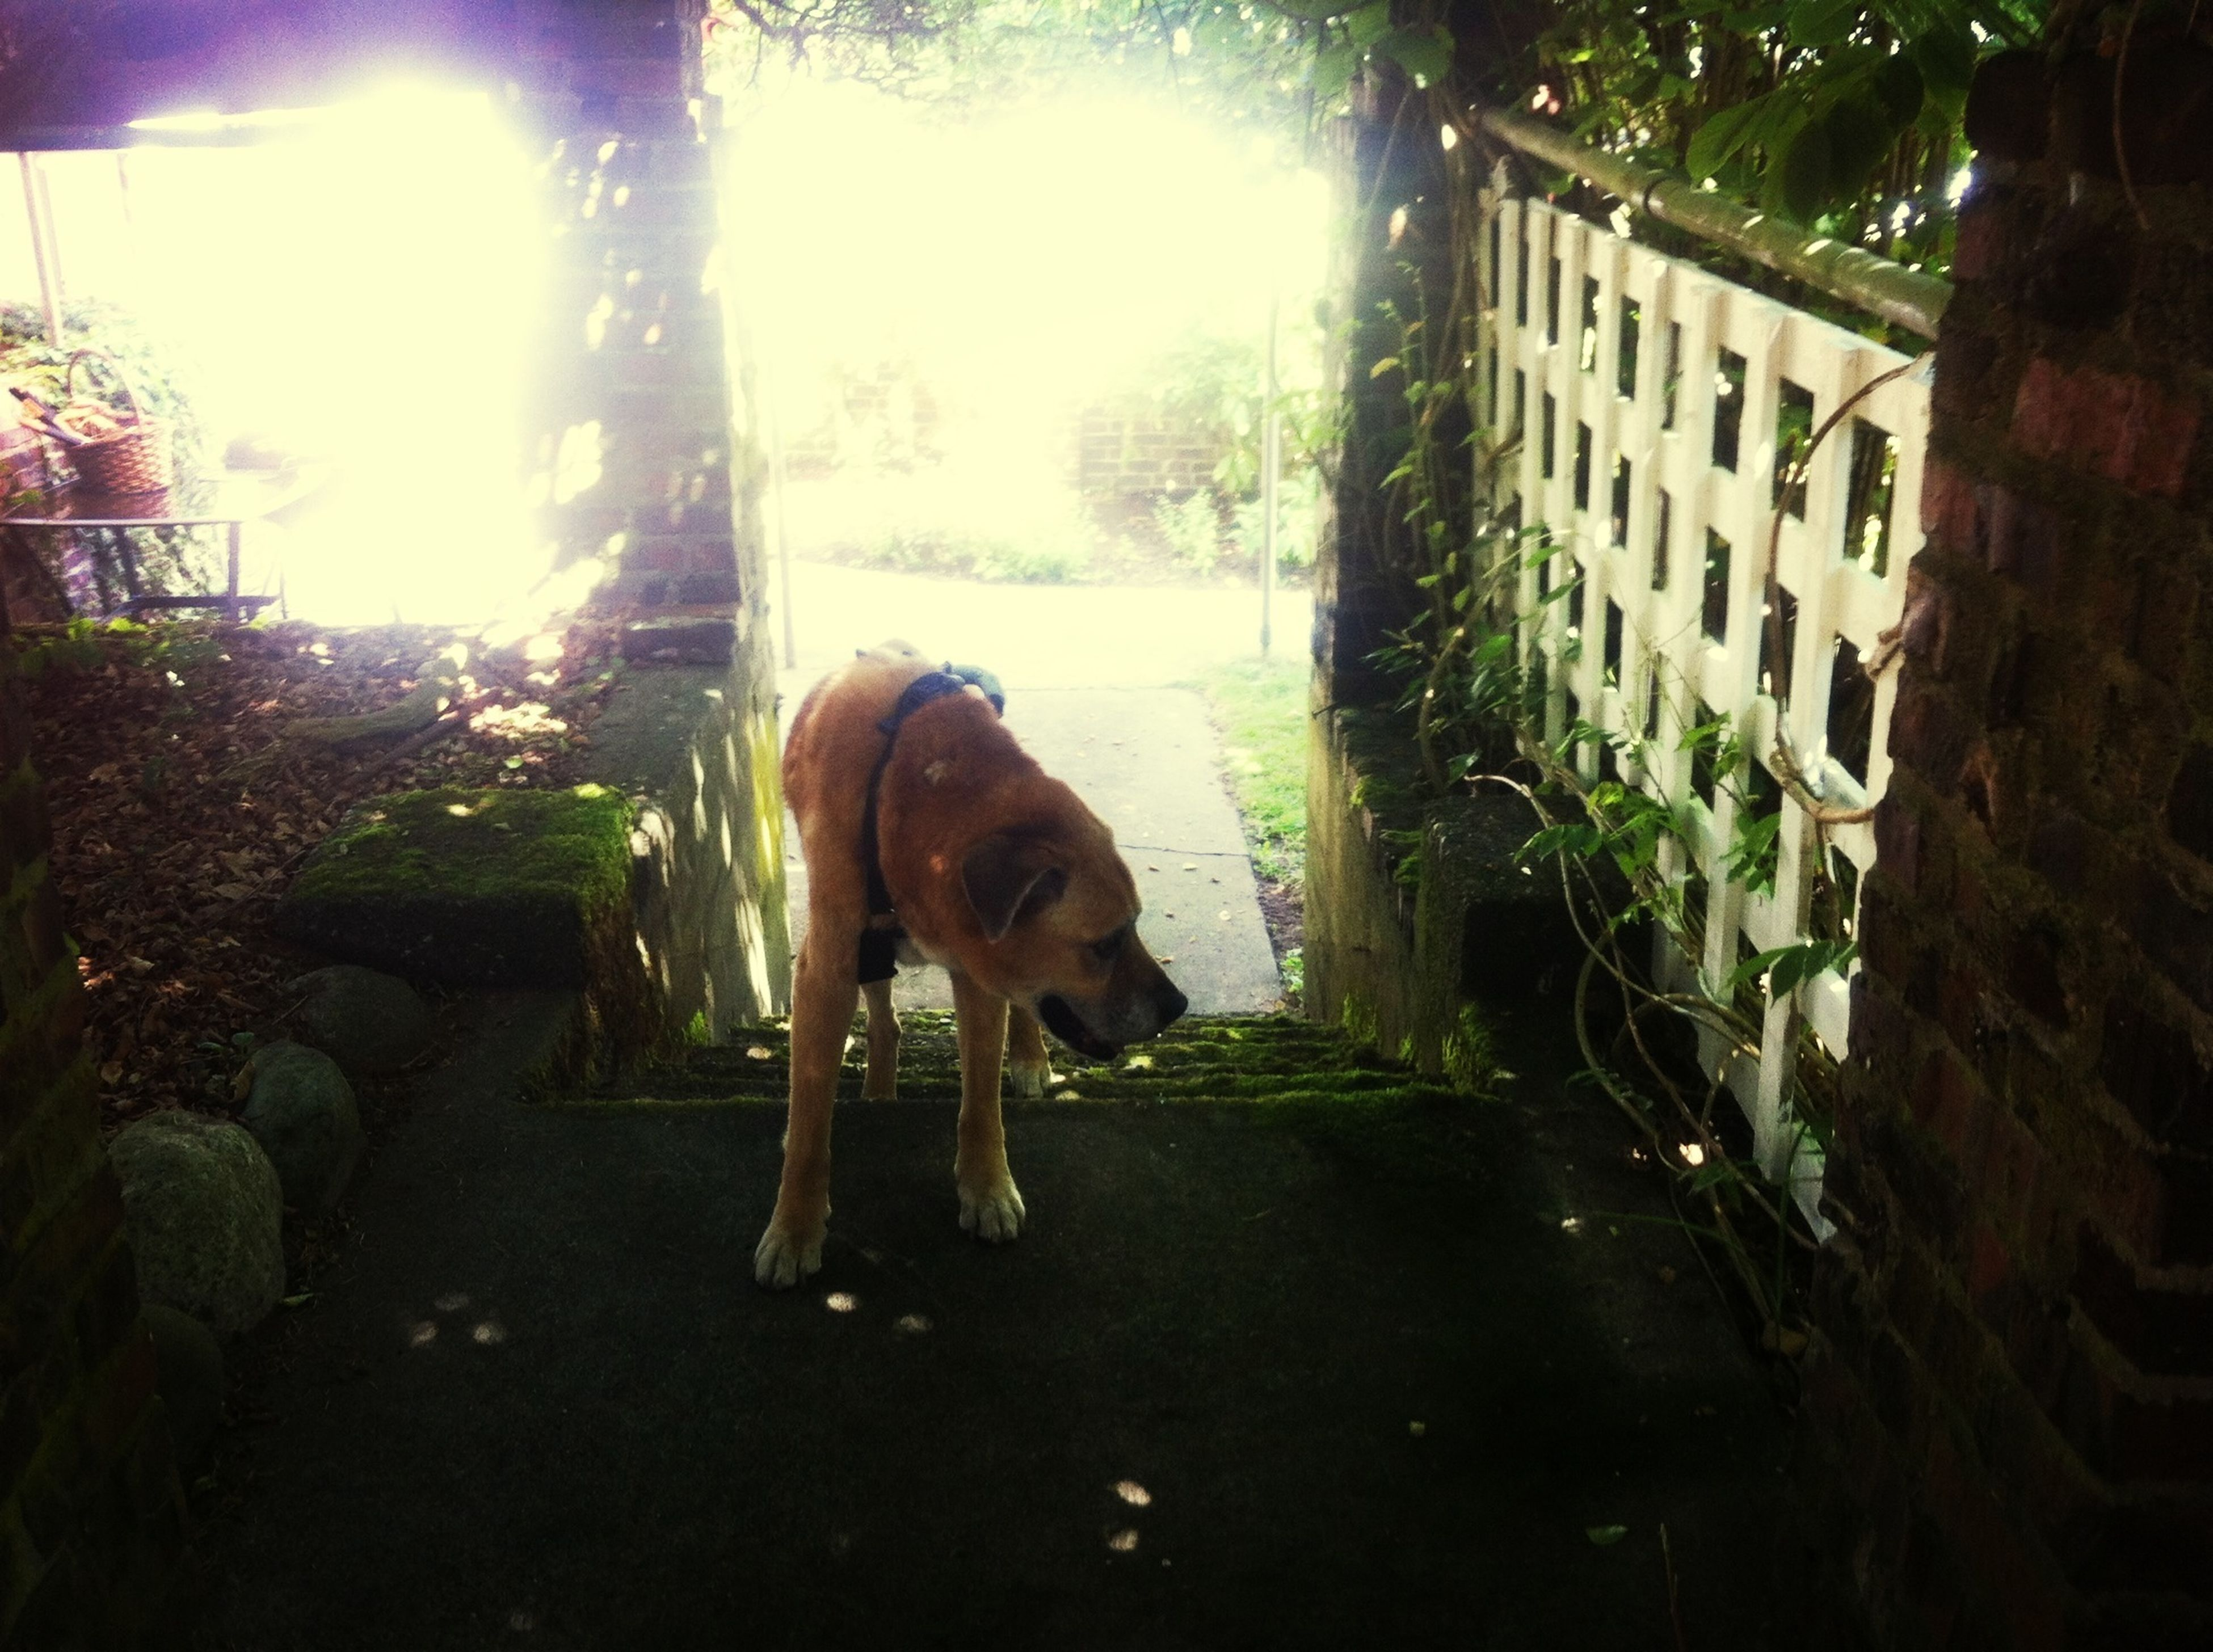 animal themes, mammal, domestic animals, pets, dog, one animal, sunlight, full length, building exterior, built structure, tree, standing, architecture, sunbeam, day, sitting, outdoors, lens flare, no people, walking